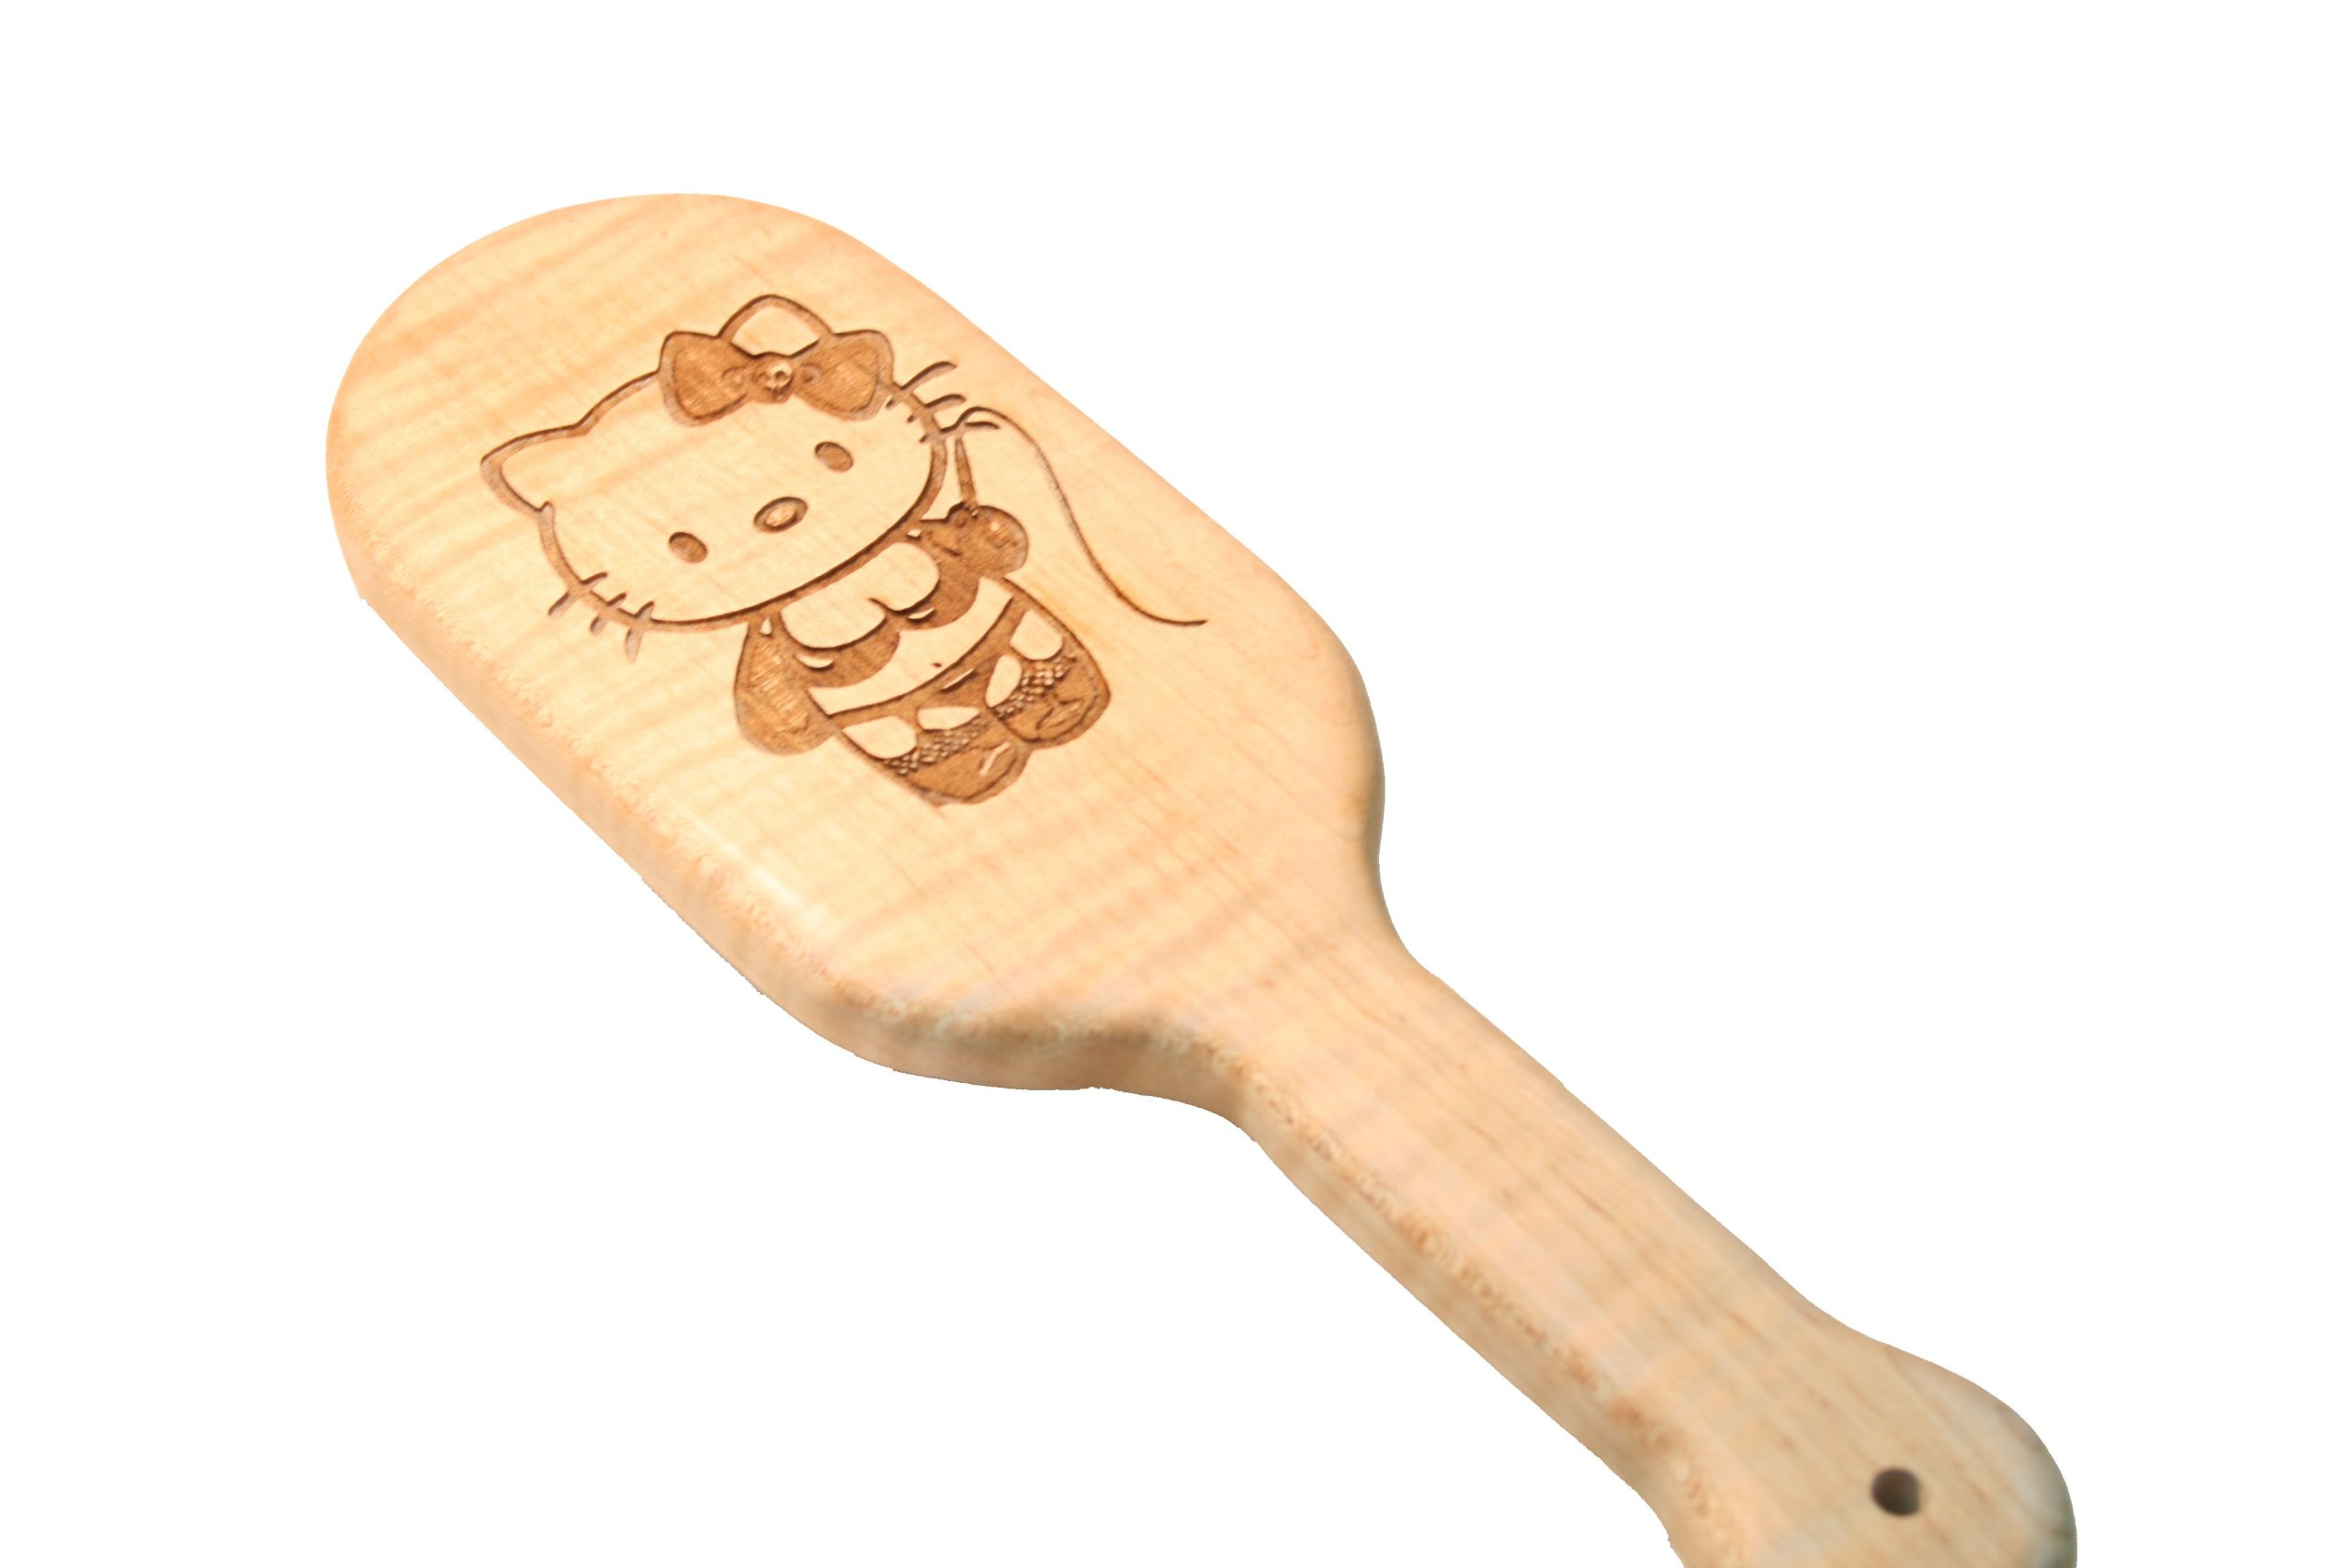 Kinky Kitty Engraved BDSM Spanking Paddle in Maple Fetish BDSM Sex Gear by The Kink Factory USA by The Kink Factory